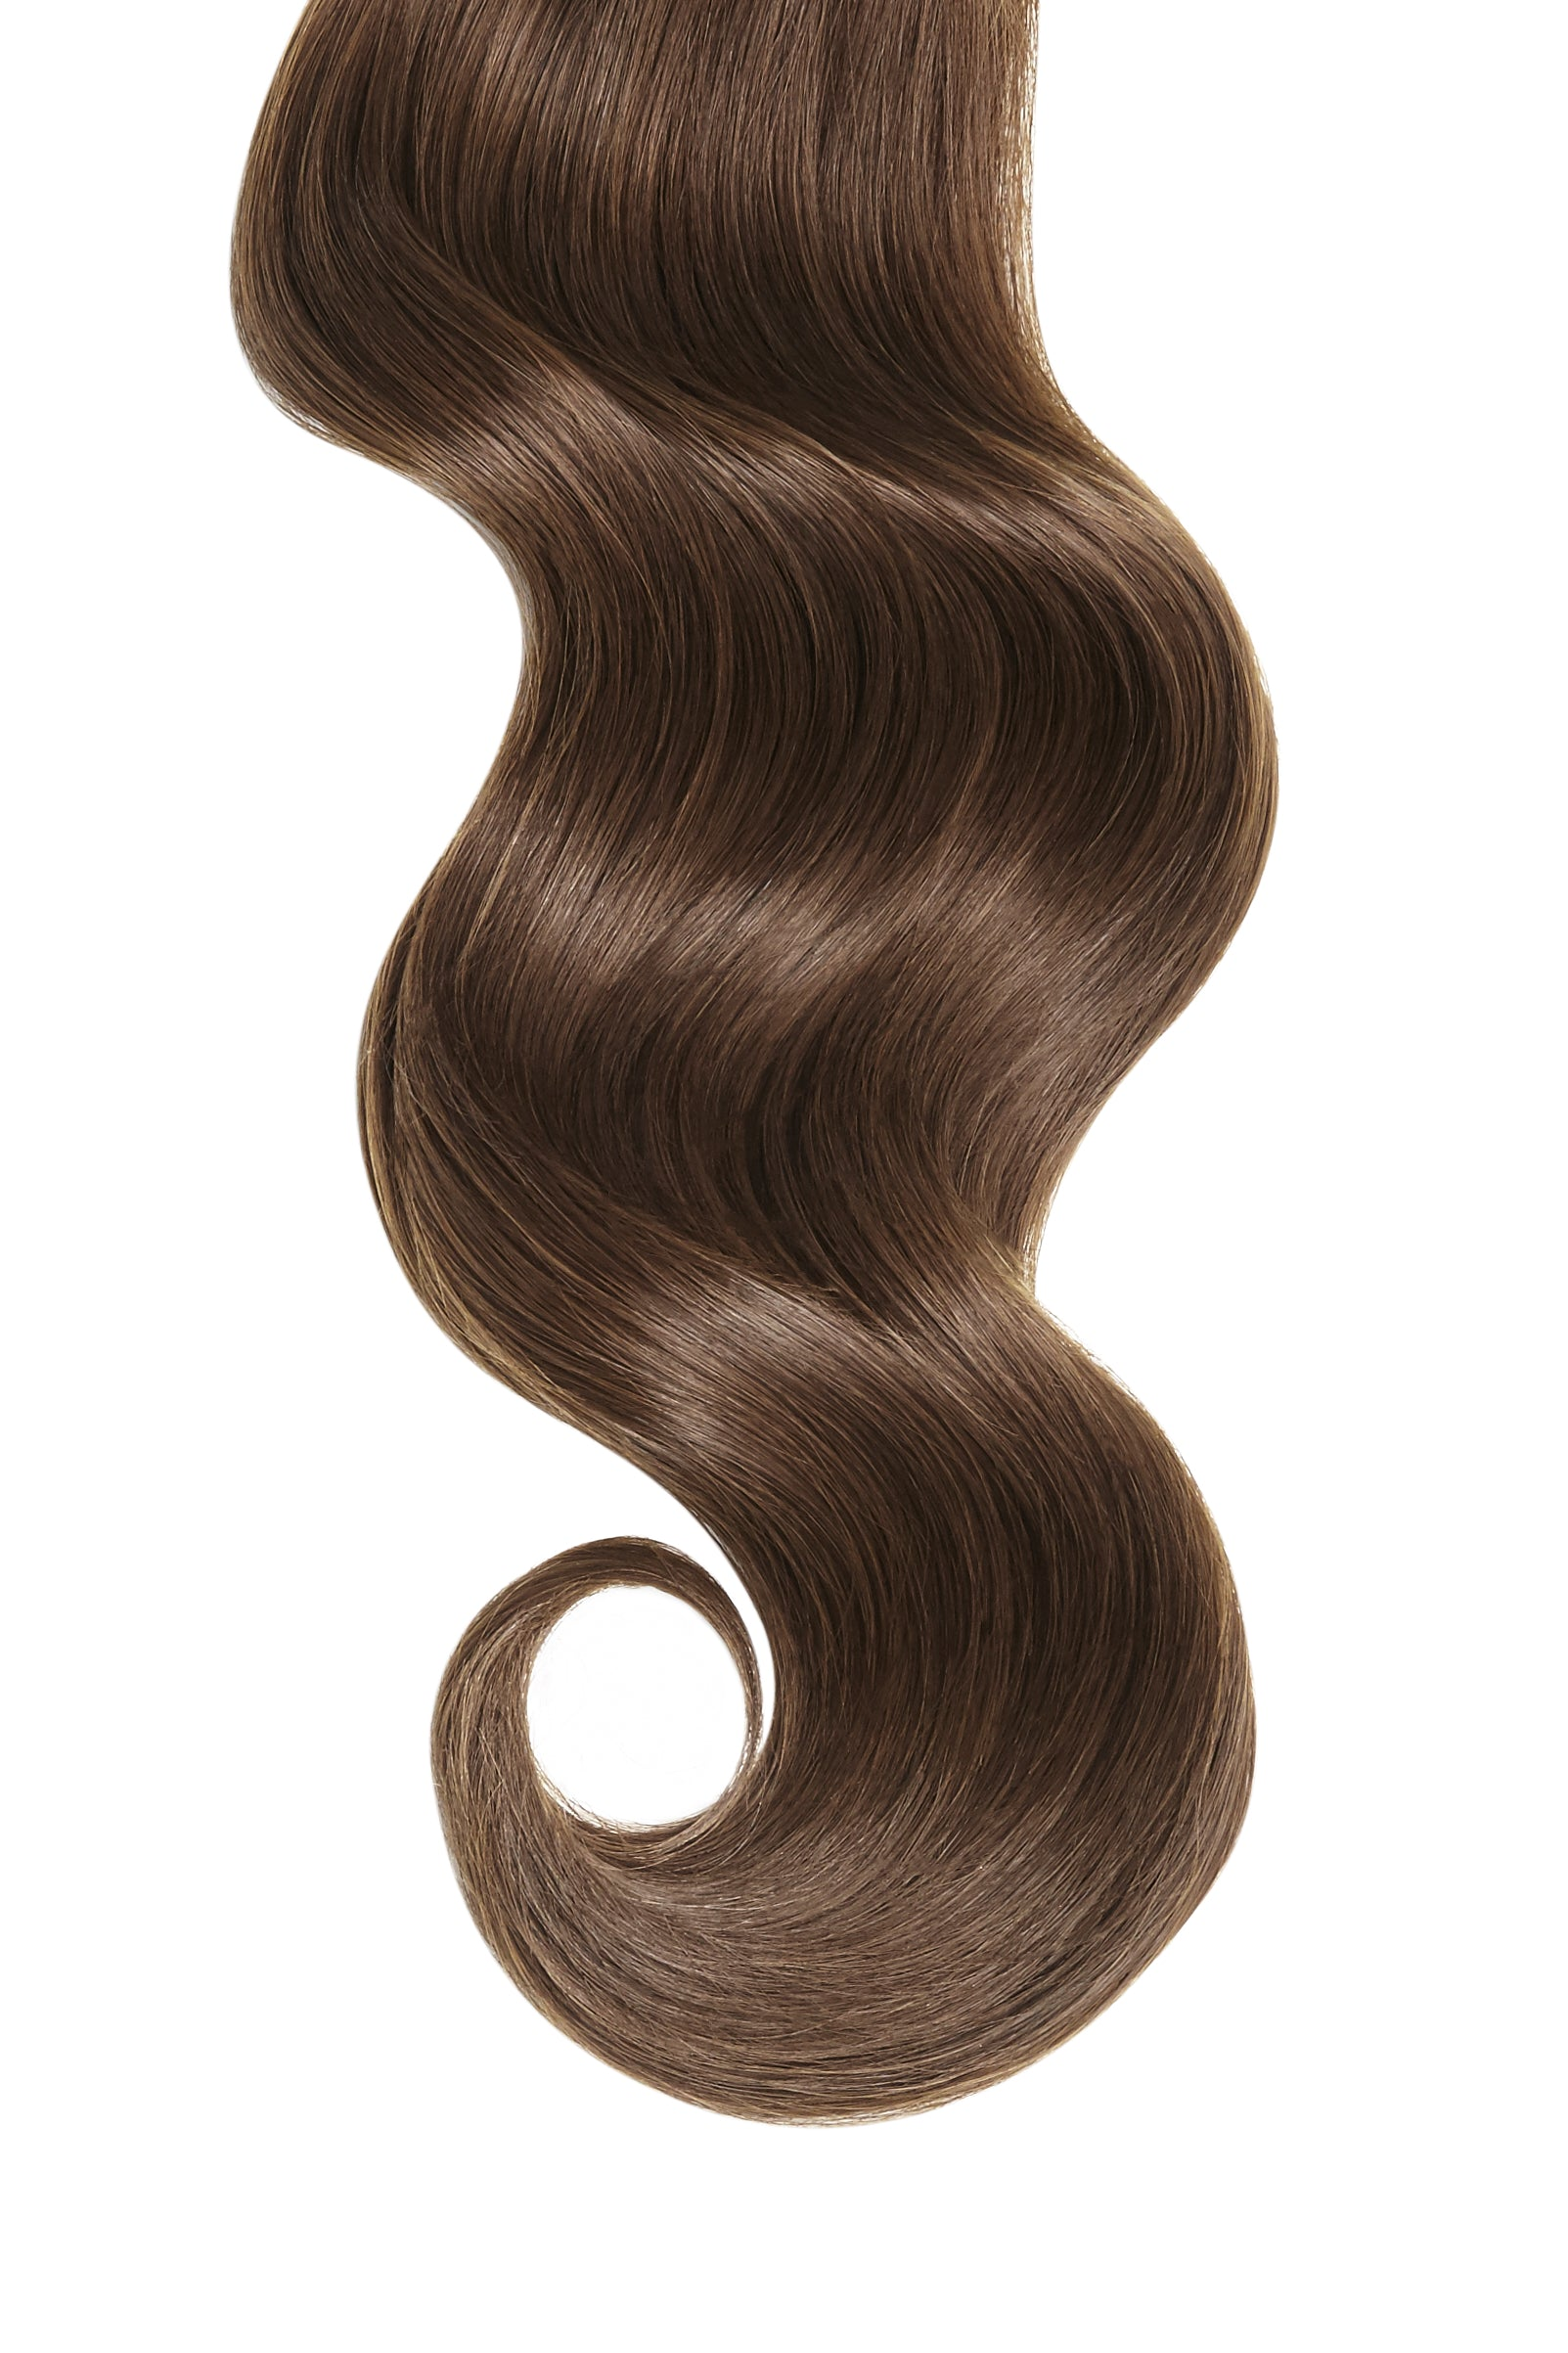 d0af302c3f06 Chocolate Brown Skin Weft Hair Extensions | Glam Seamless – Glam ...